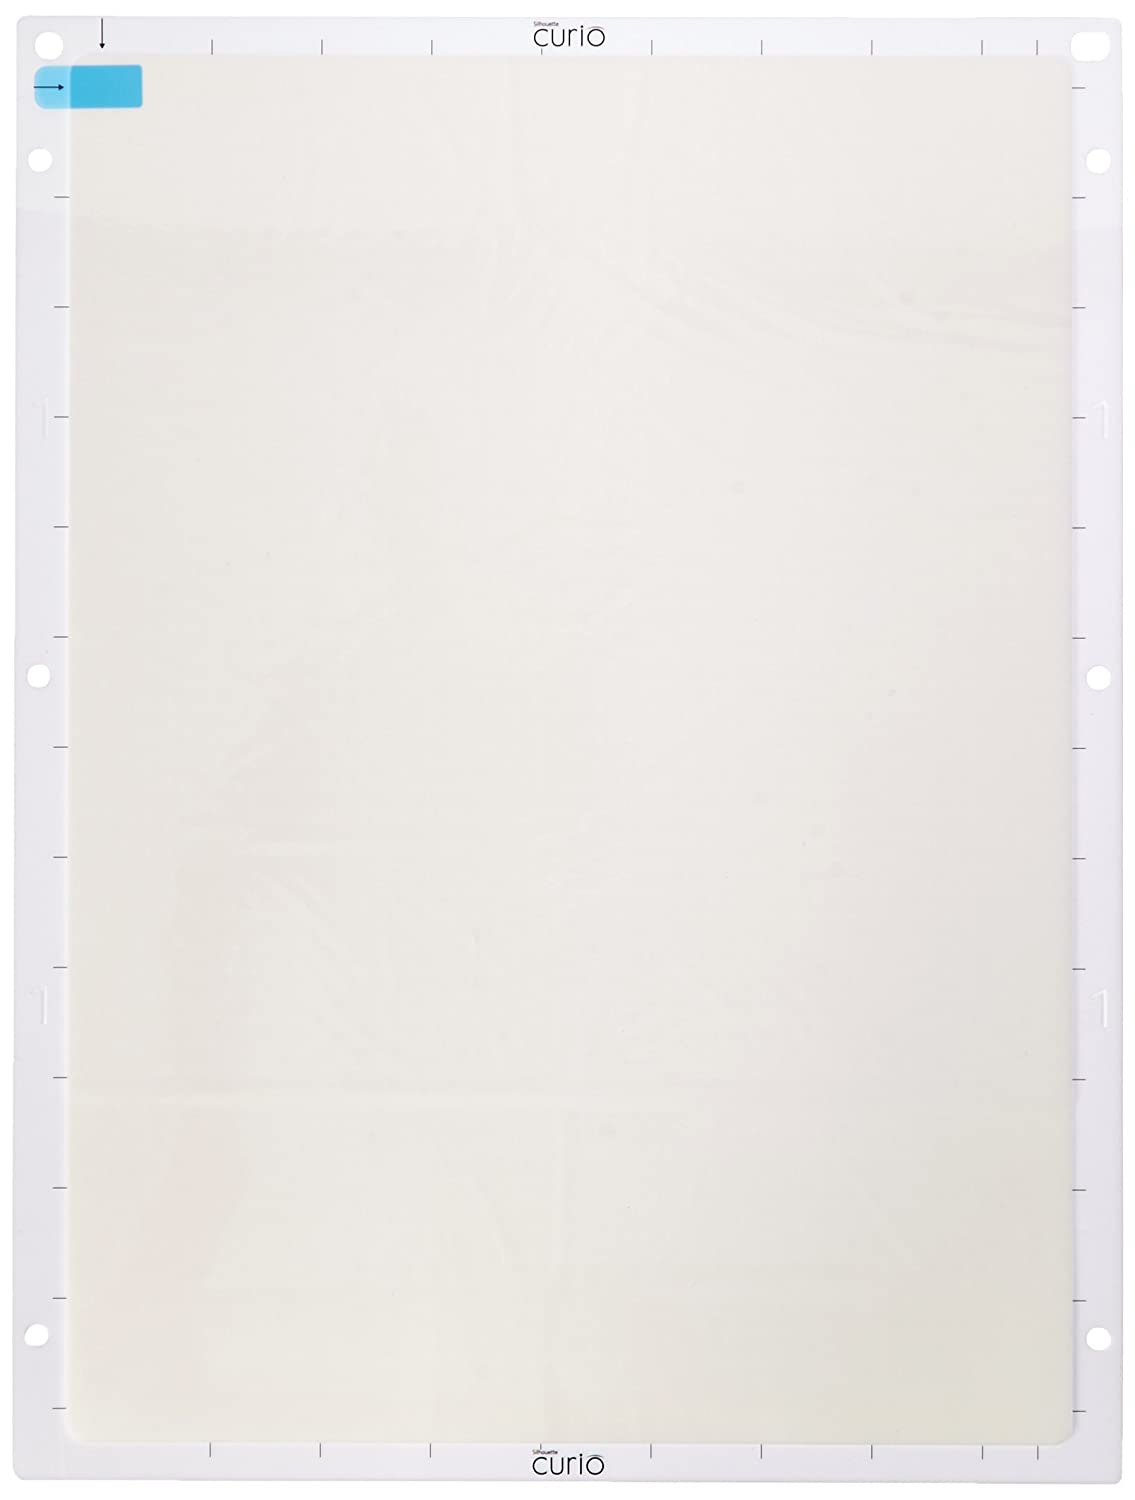 Silhouette Curio Embossing Mat, Large